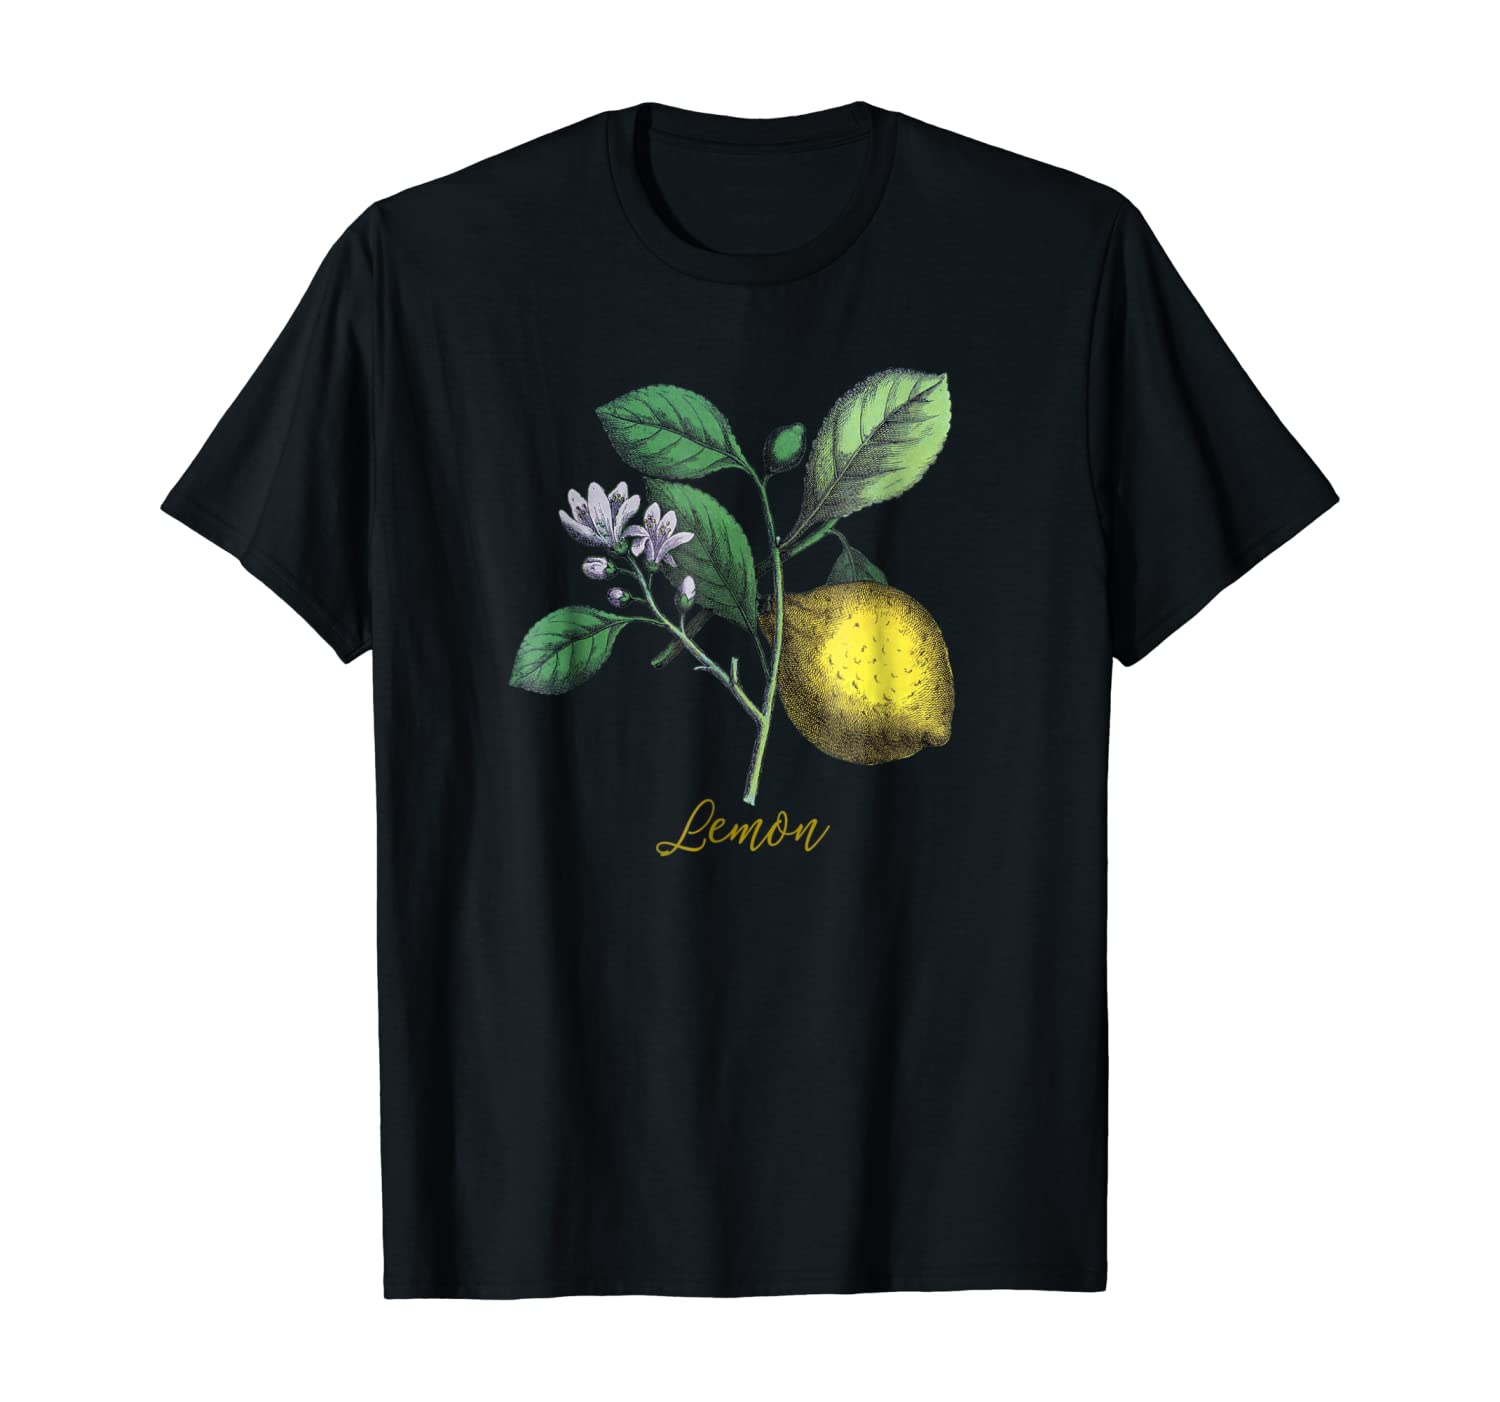 Vintage Botanical Art T-shirt Lemon Plant